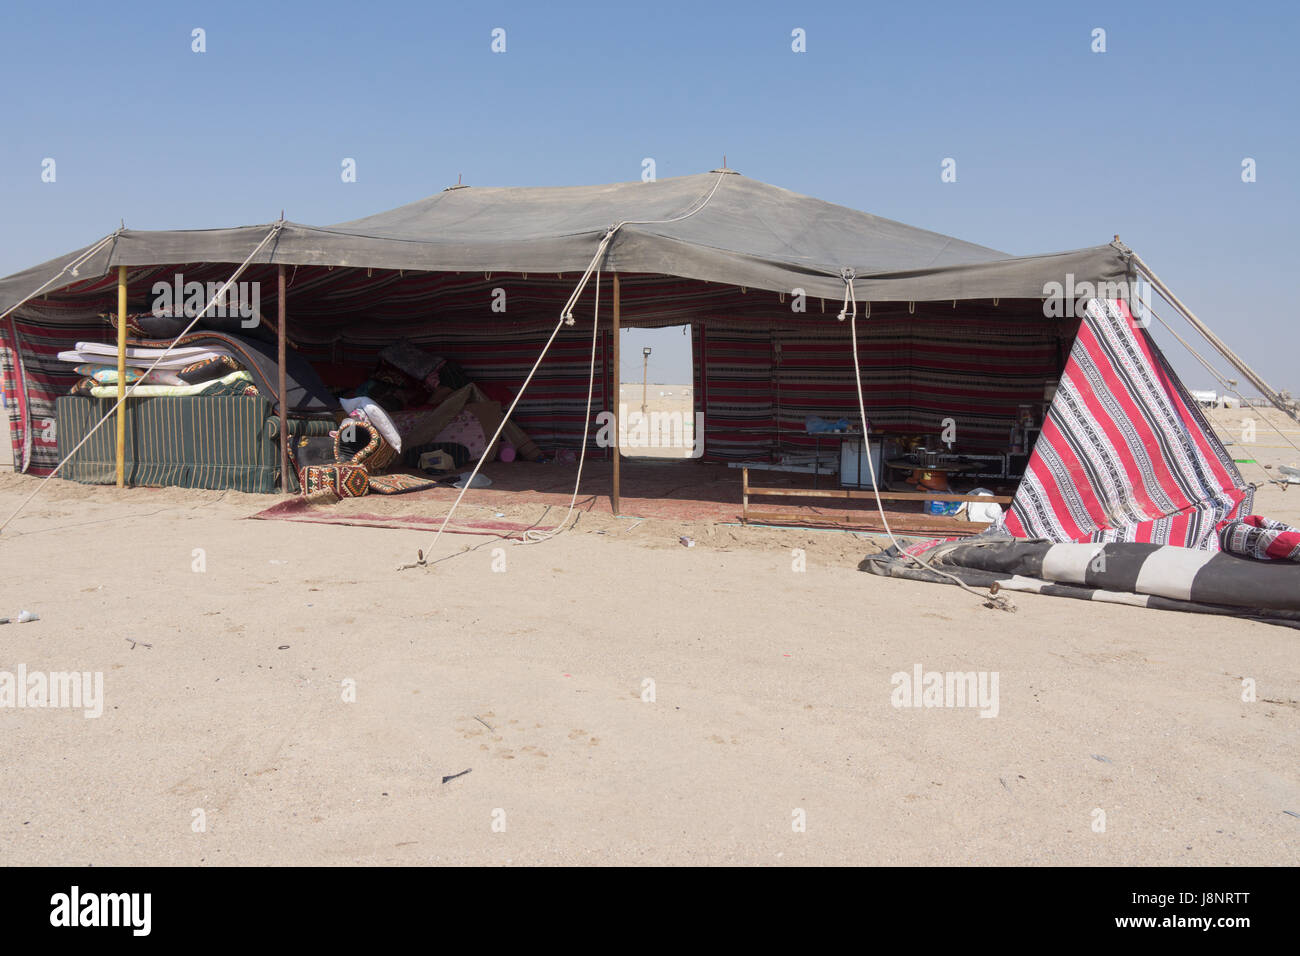 A discarded bedouin camp in Kuwait with camel hair tent. - Stock Image